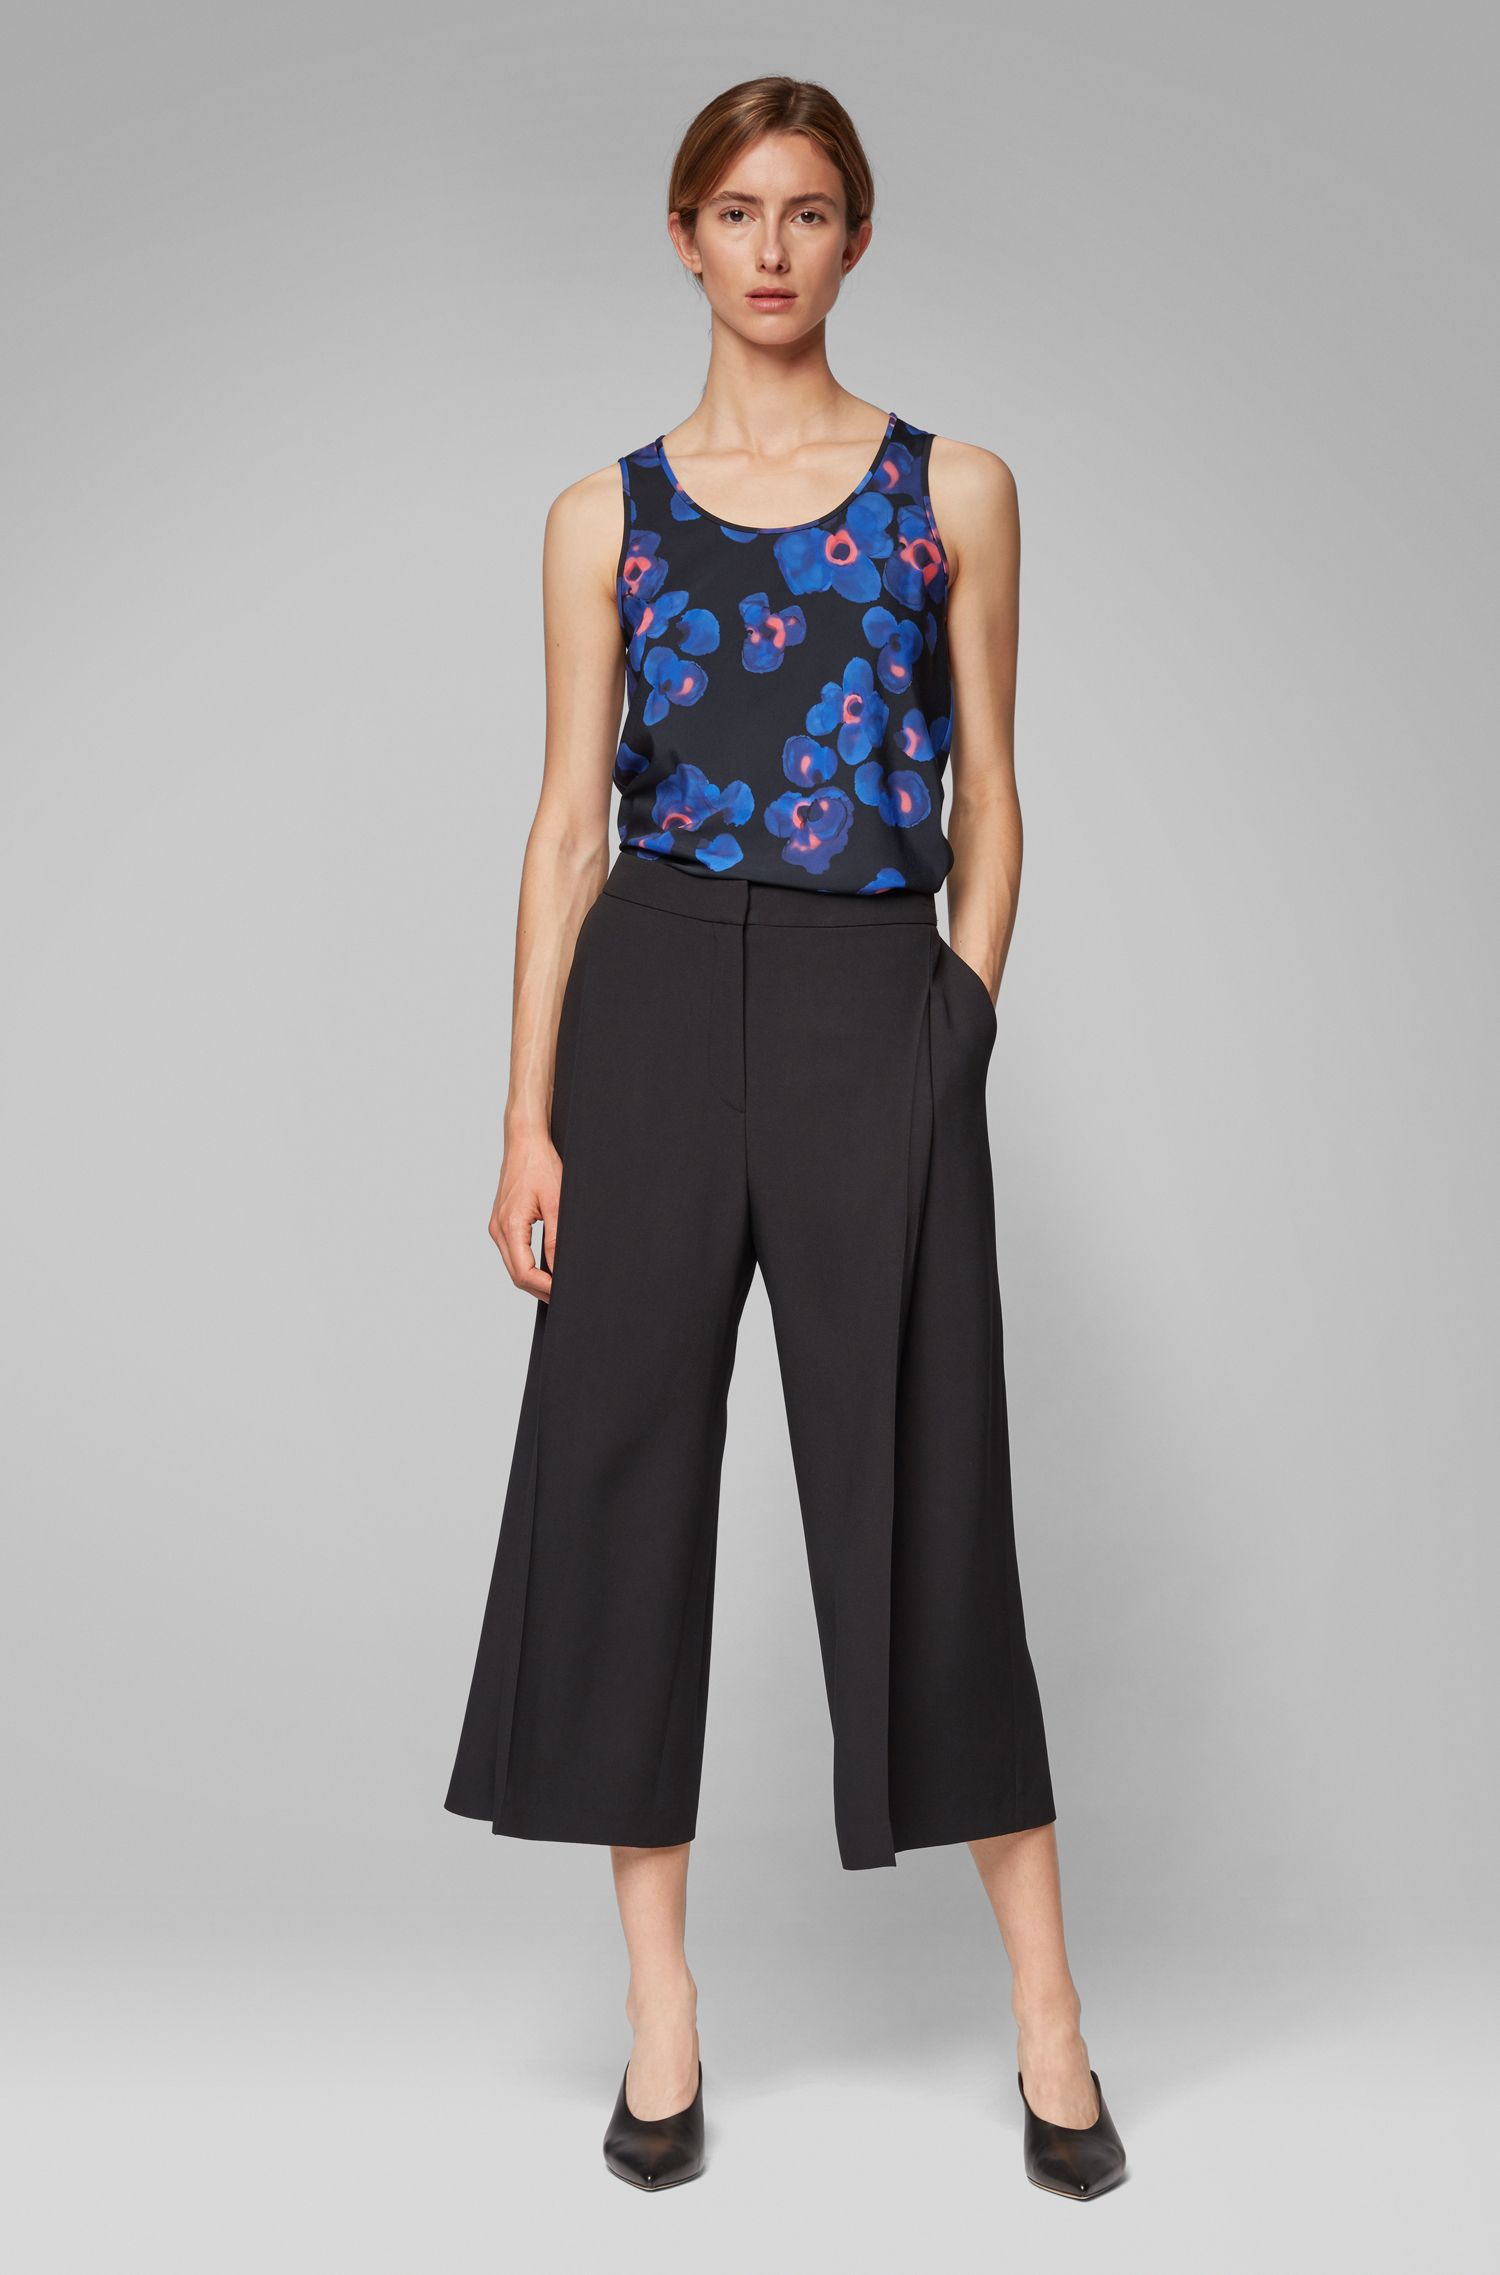 Regular-fit sleeveless top in collection print, Patterned